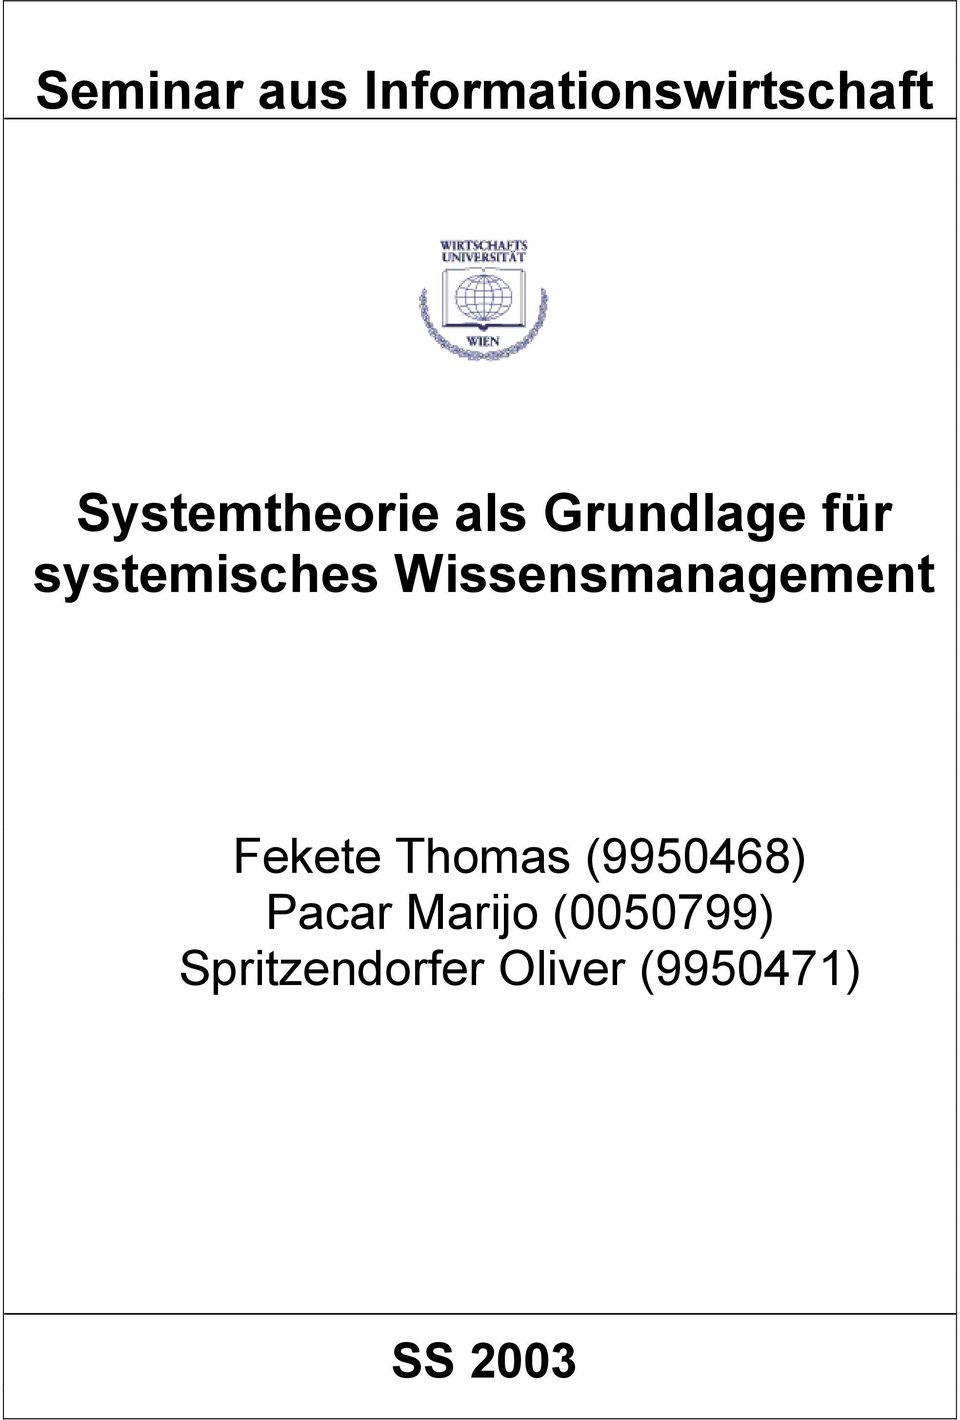 Wissensmanagement Fekete Thomas (9950468)